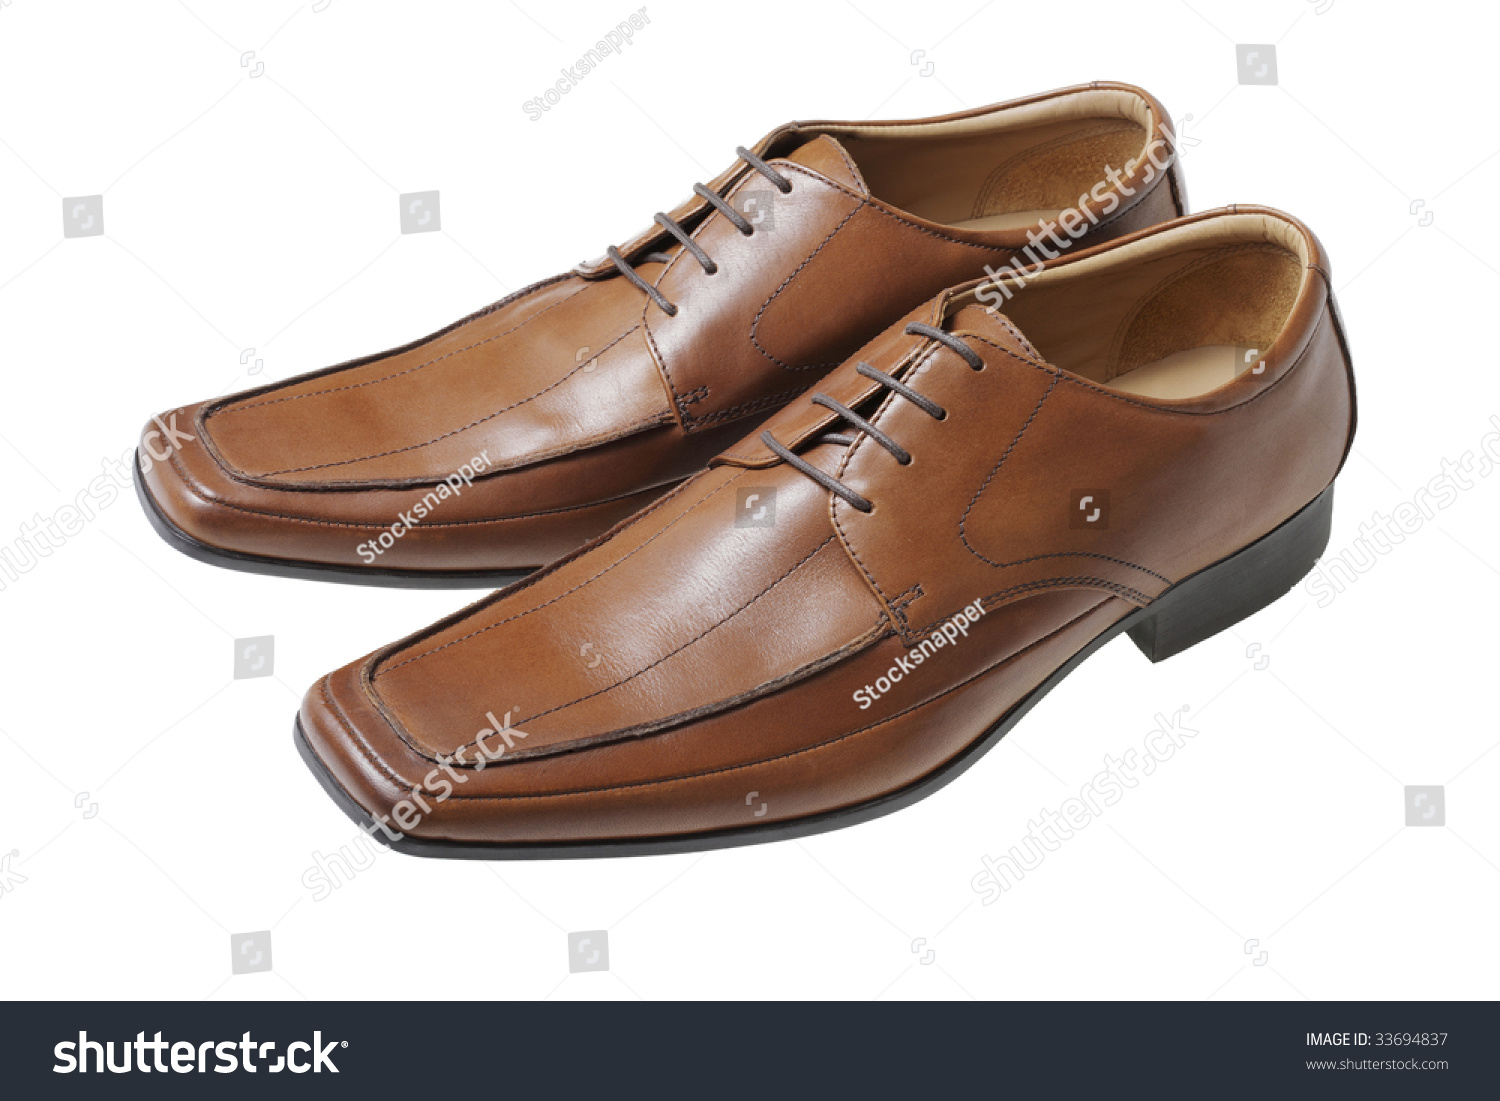 Mens Brown Leather Dress Shoes Stock Photo 33694837 - Shutterstock